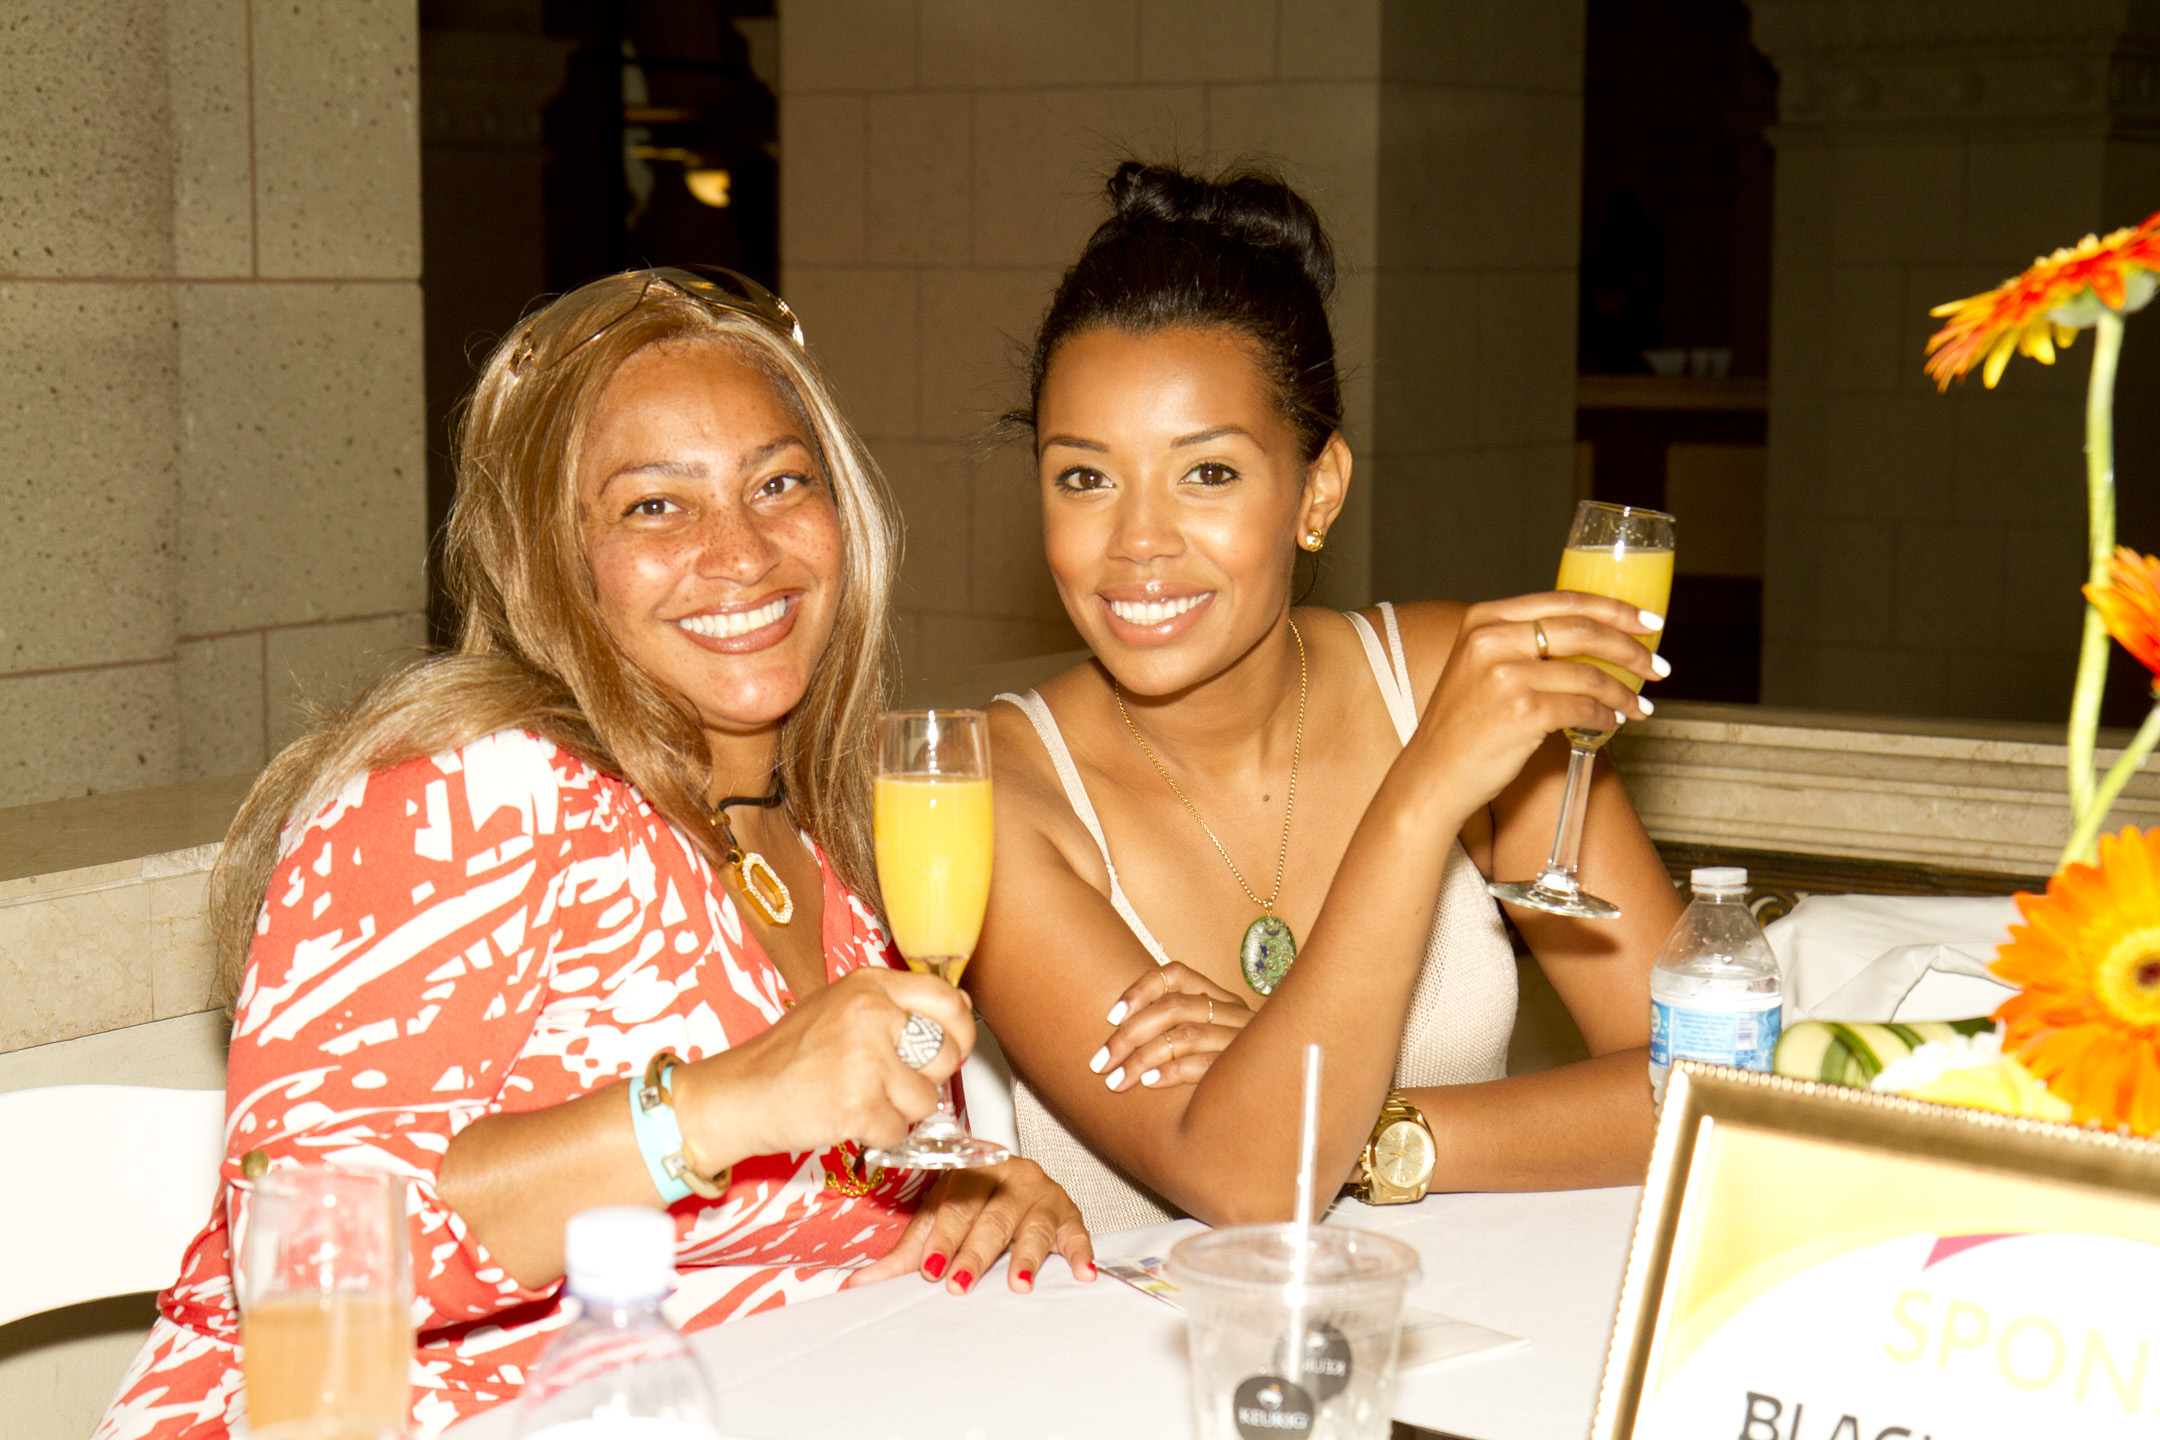 Power Brunch LA: Professionals Gather for Networking and Fun